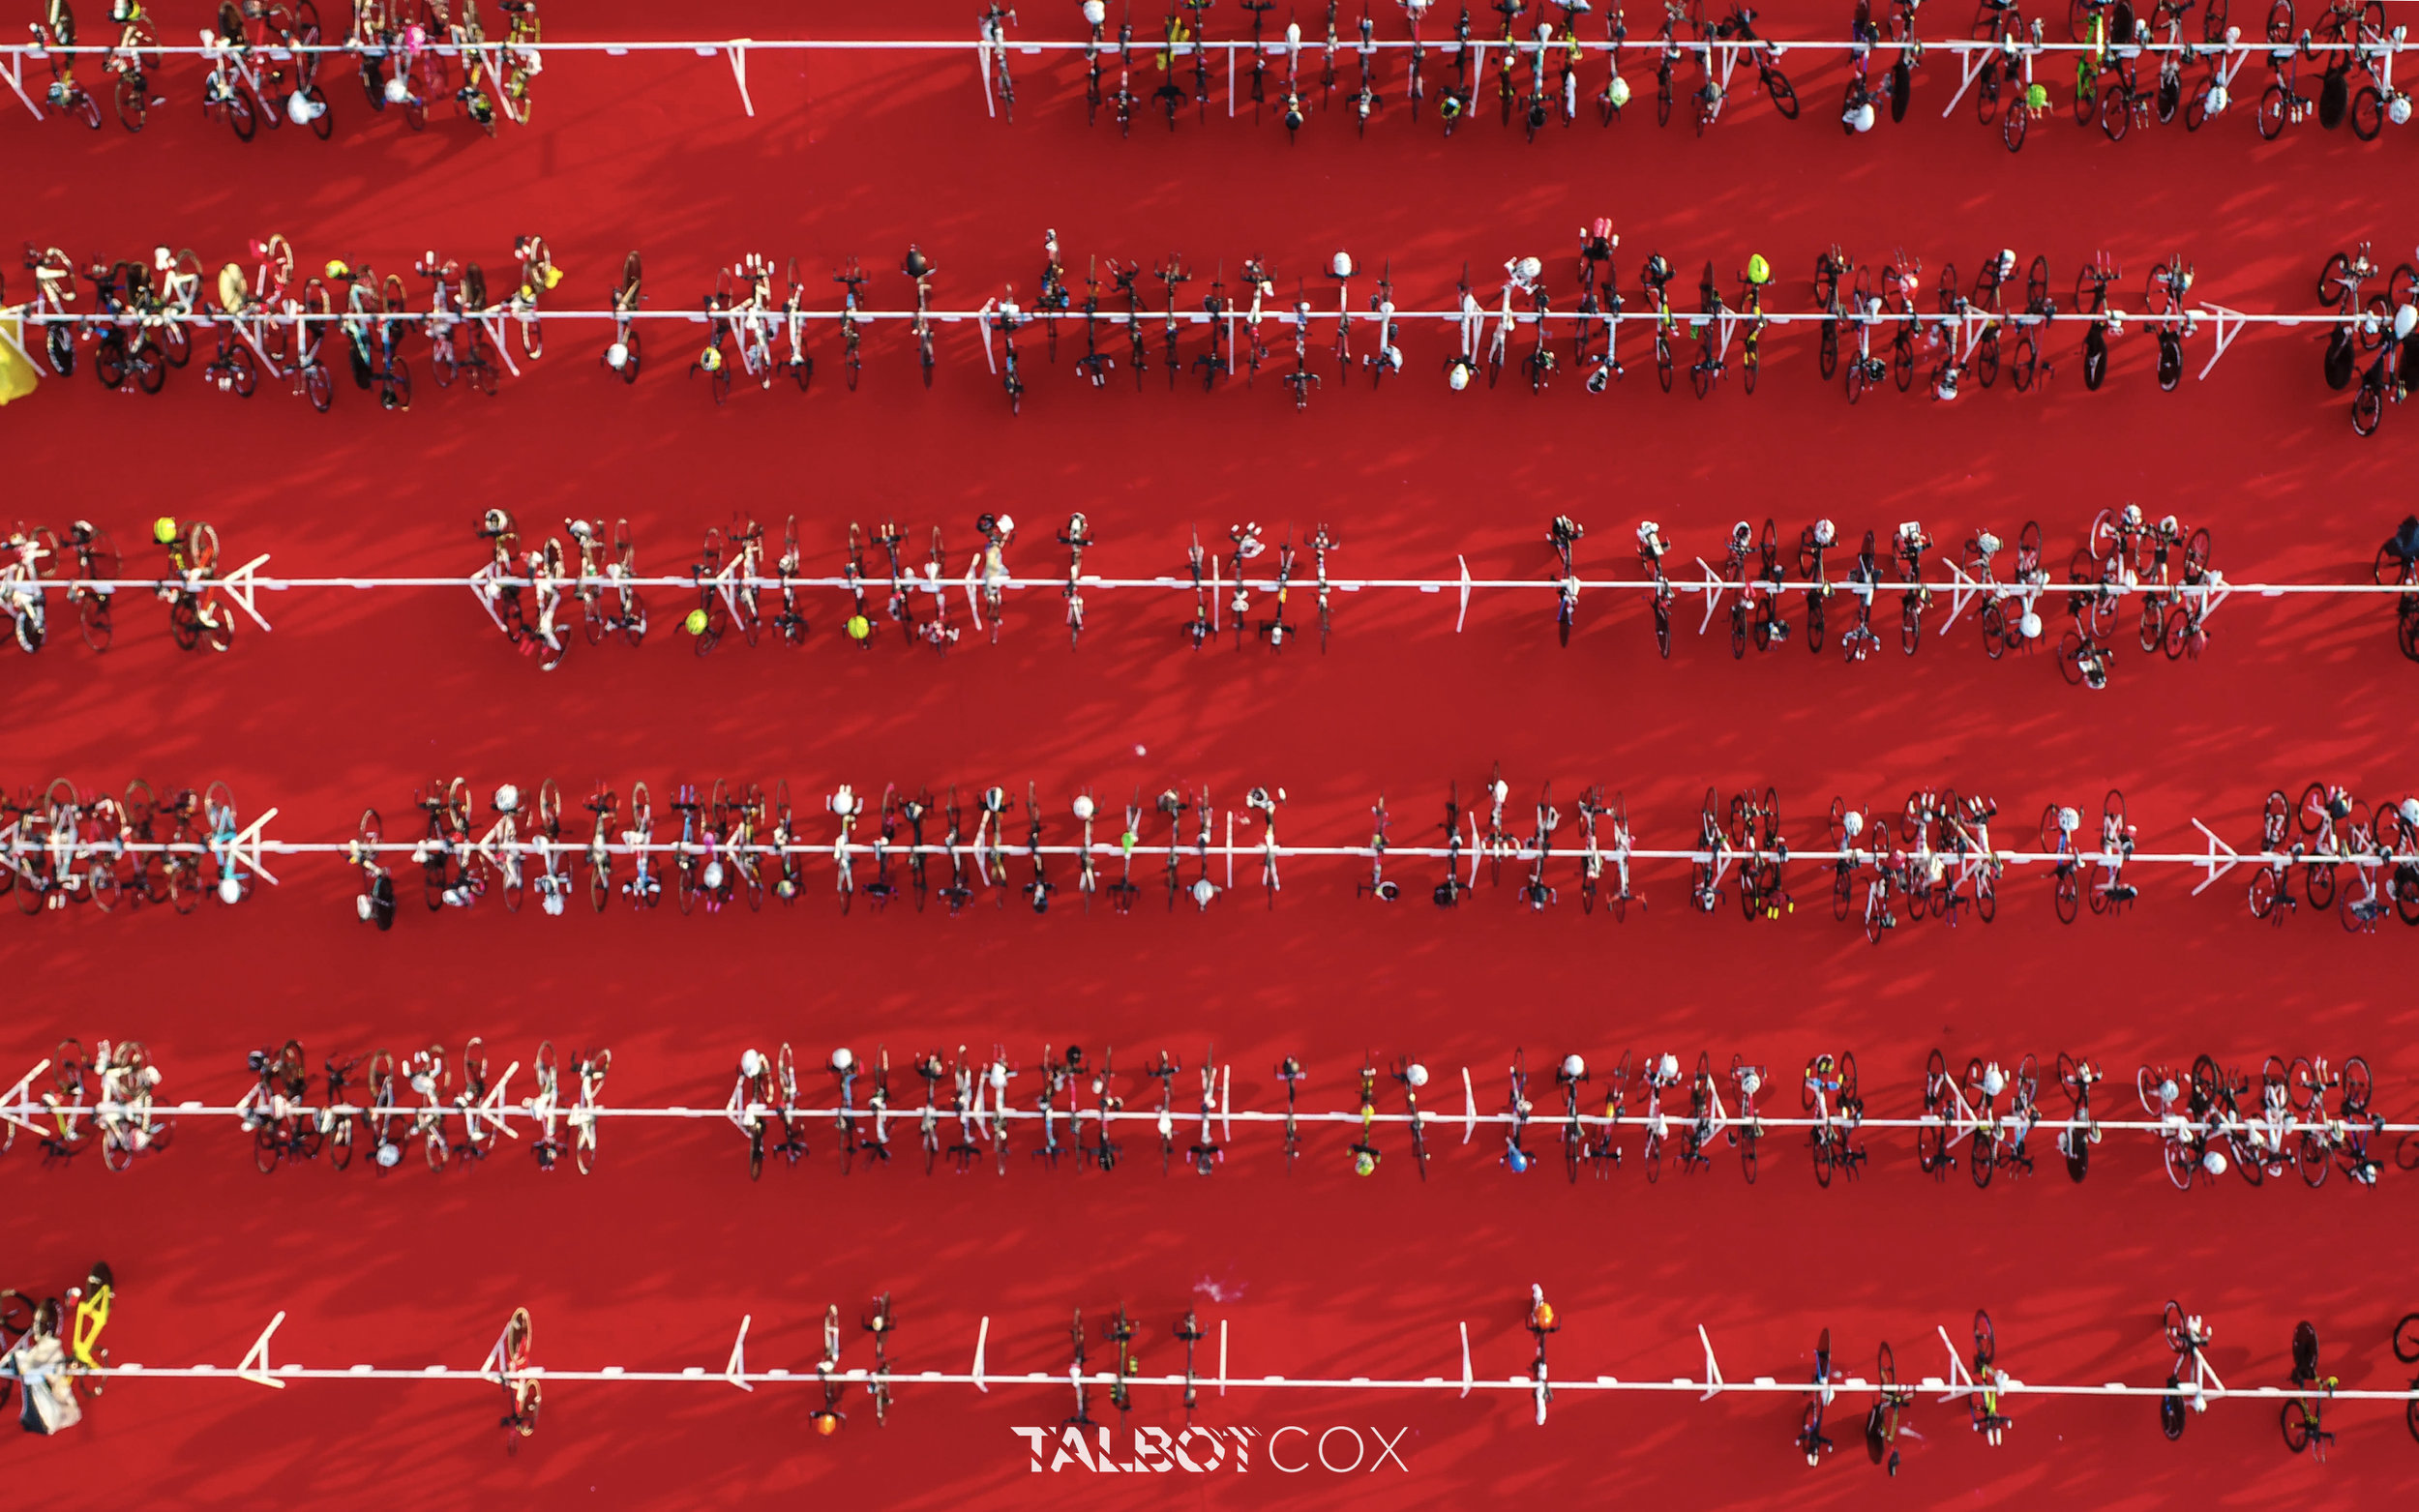 TalbotCox-Wallpaper-Desktop-2.jpg